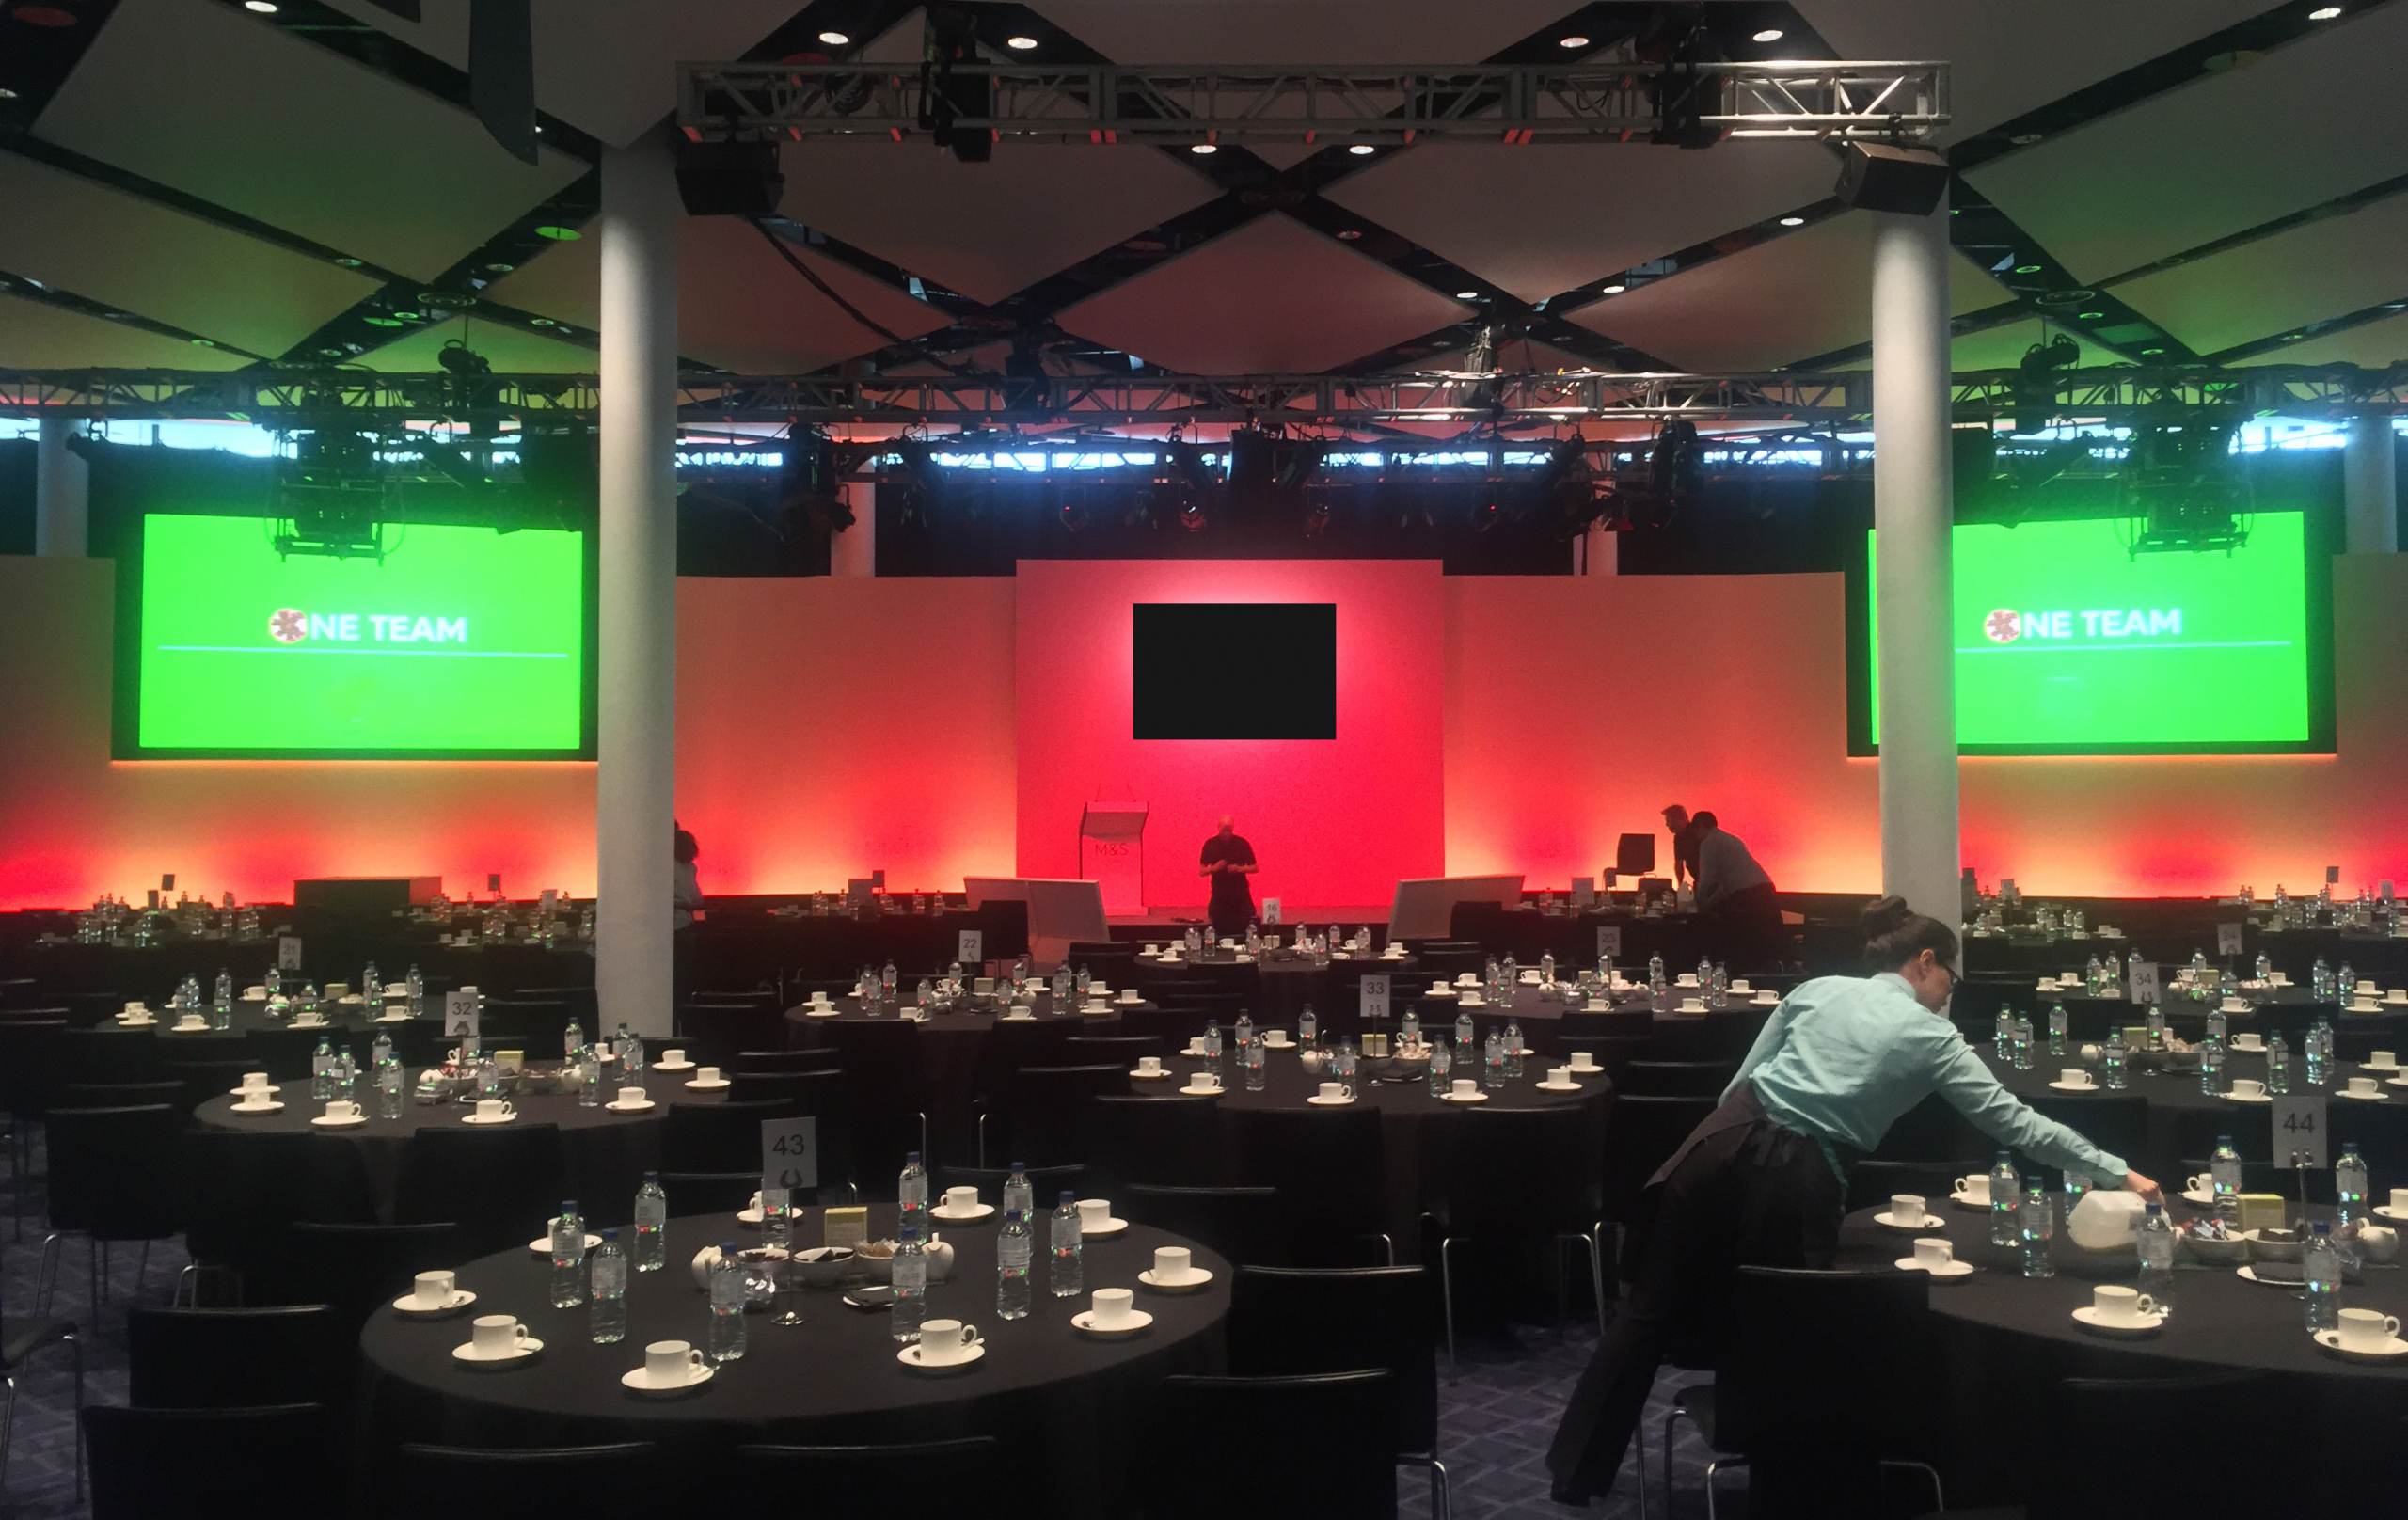 RETAIL CONFERENCE AT WEMBLEY STADIUM